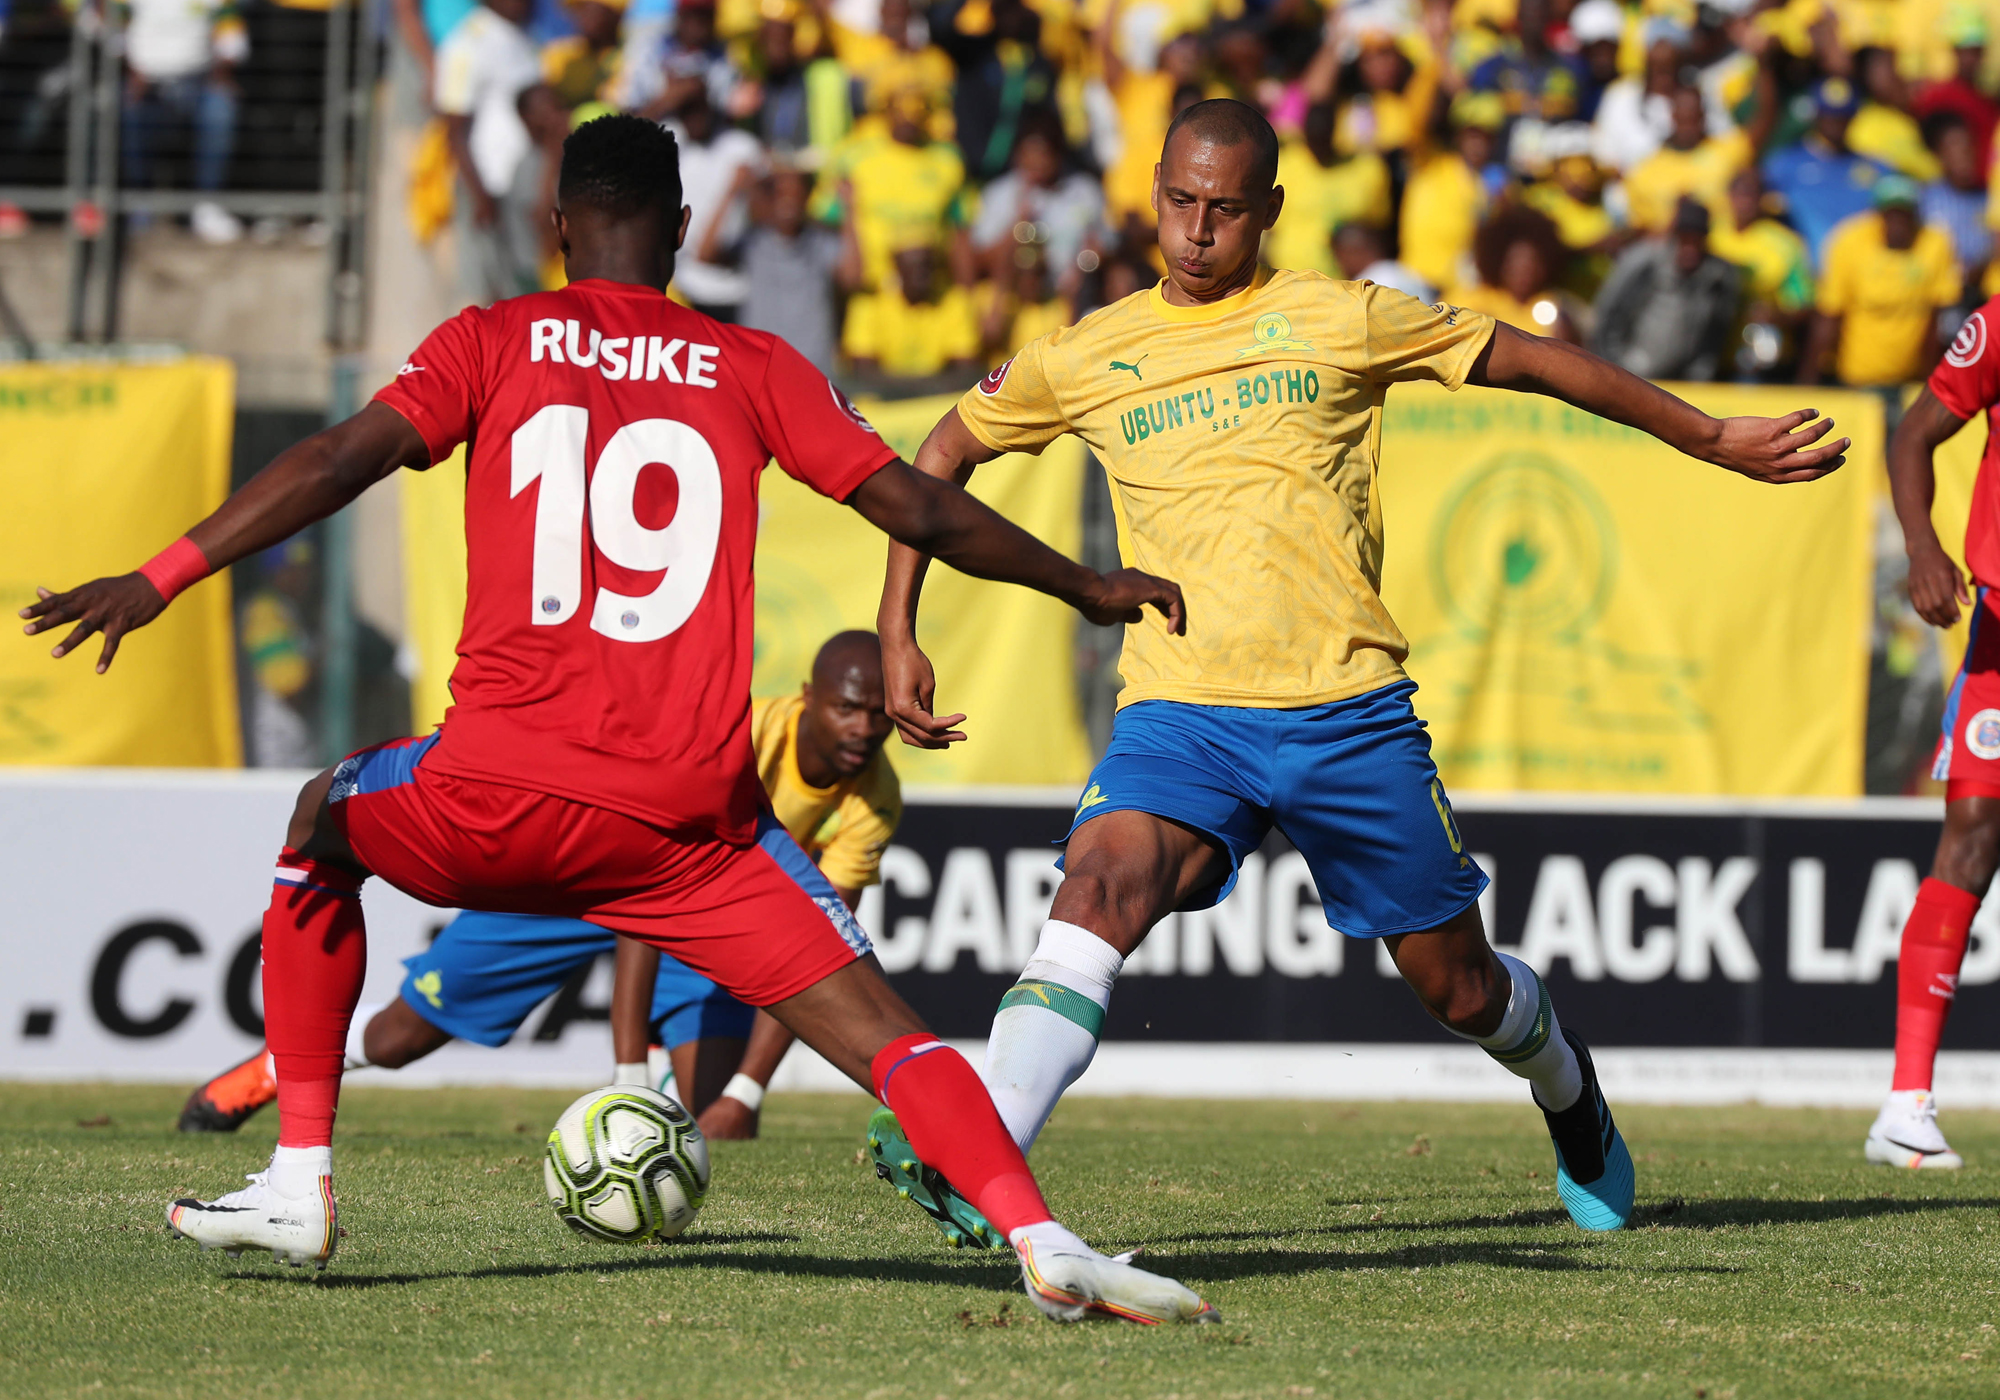 Arendse: We know what we are up against